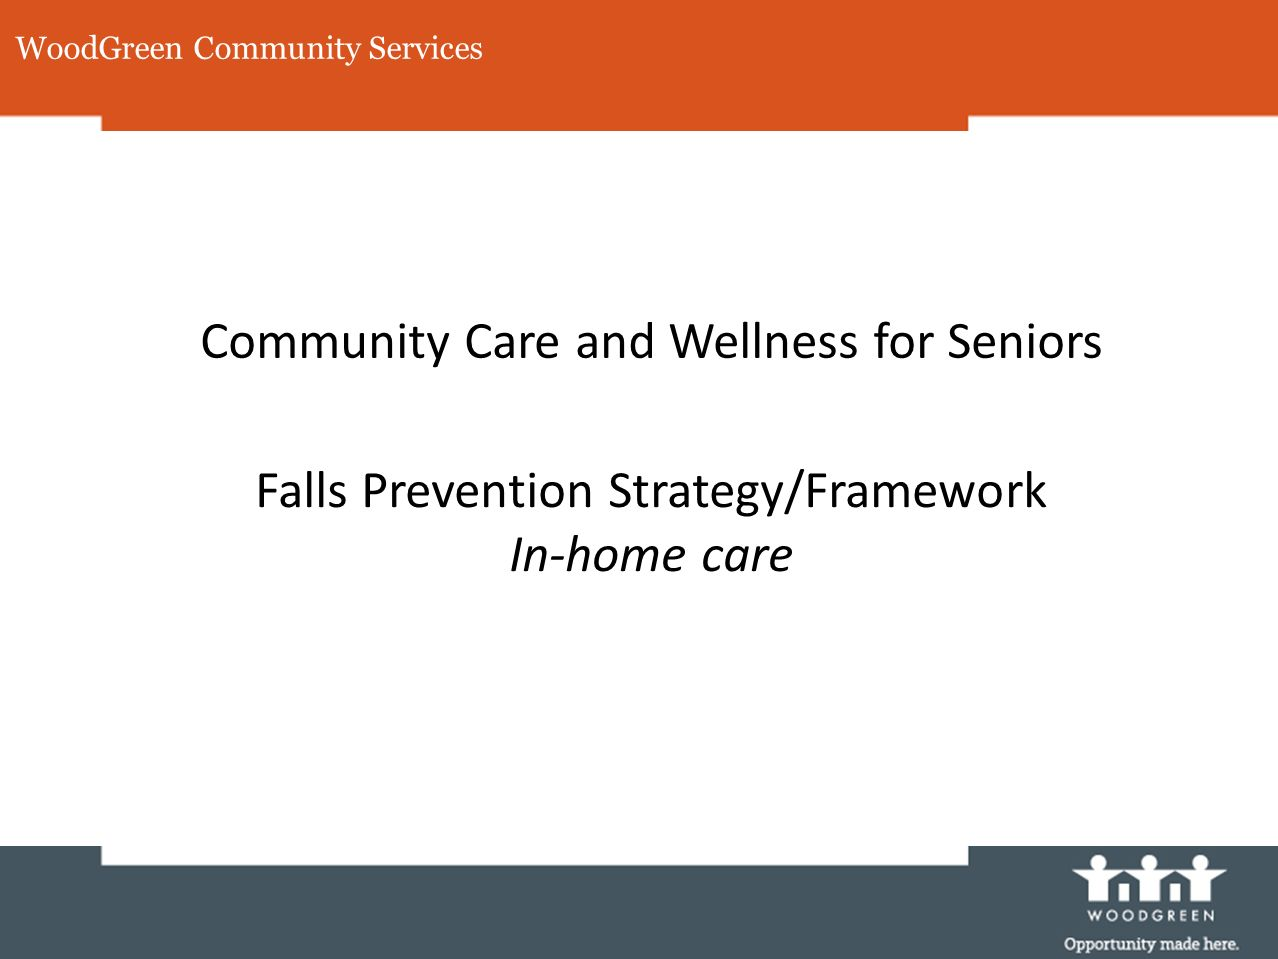 Community Care and Wellness for Seniors